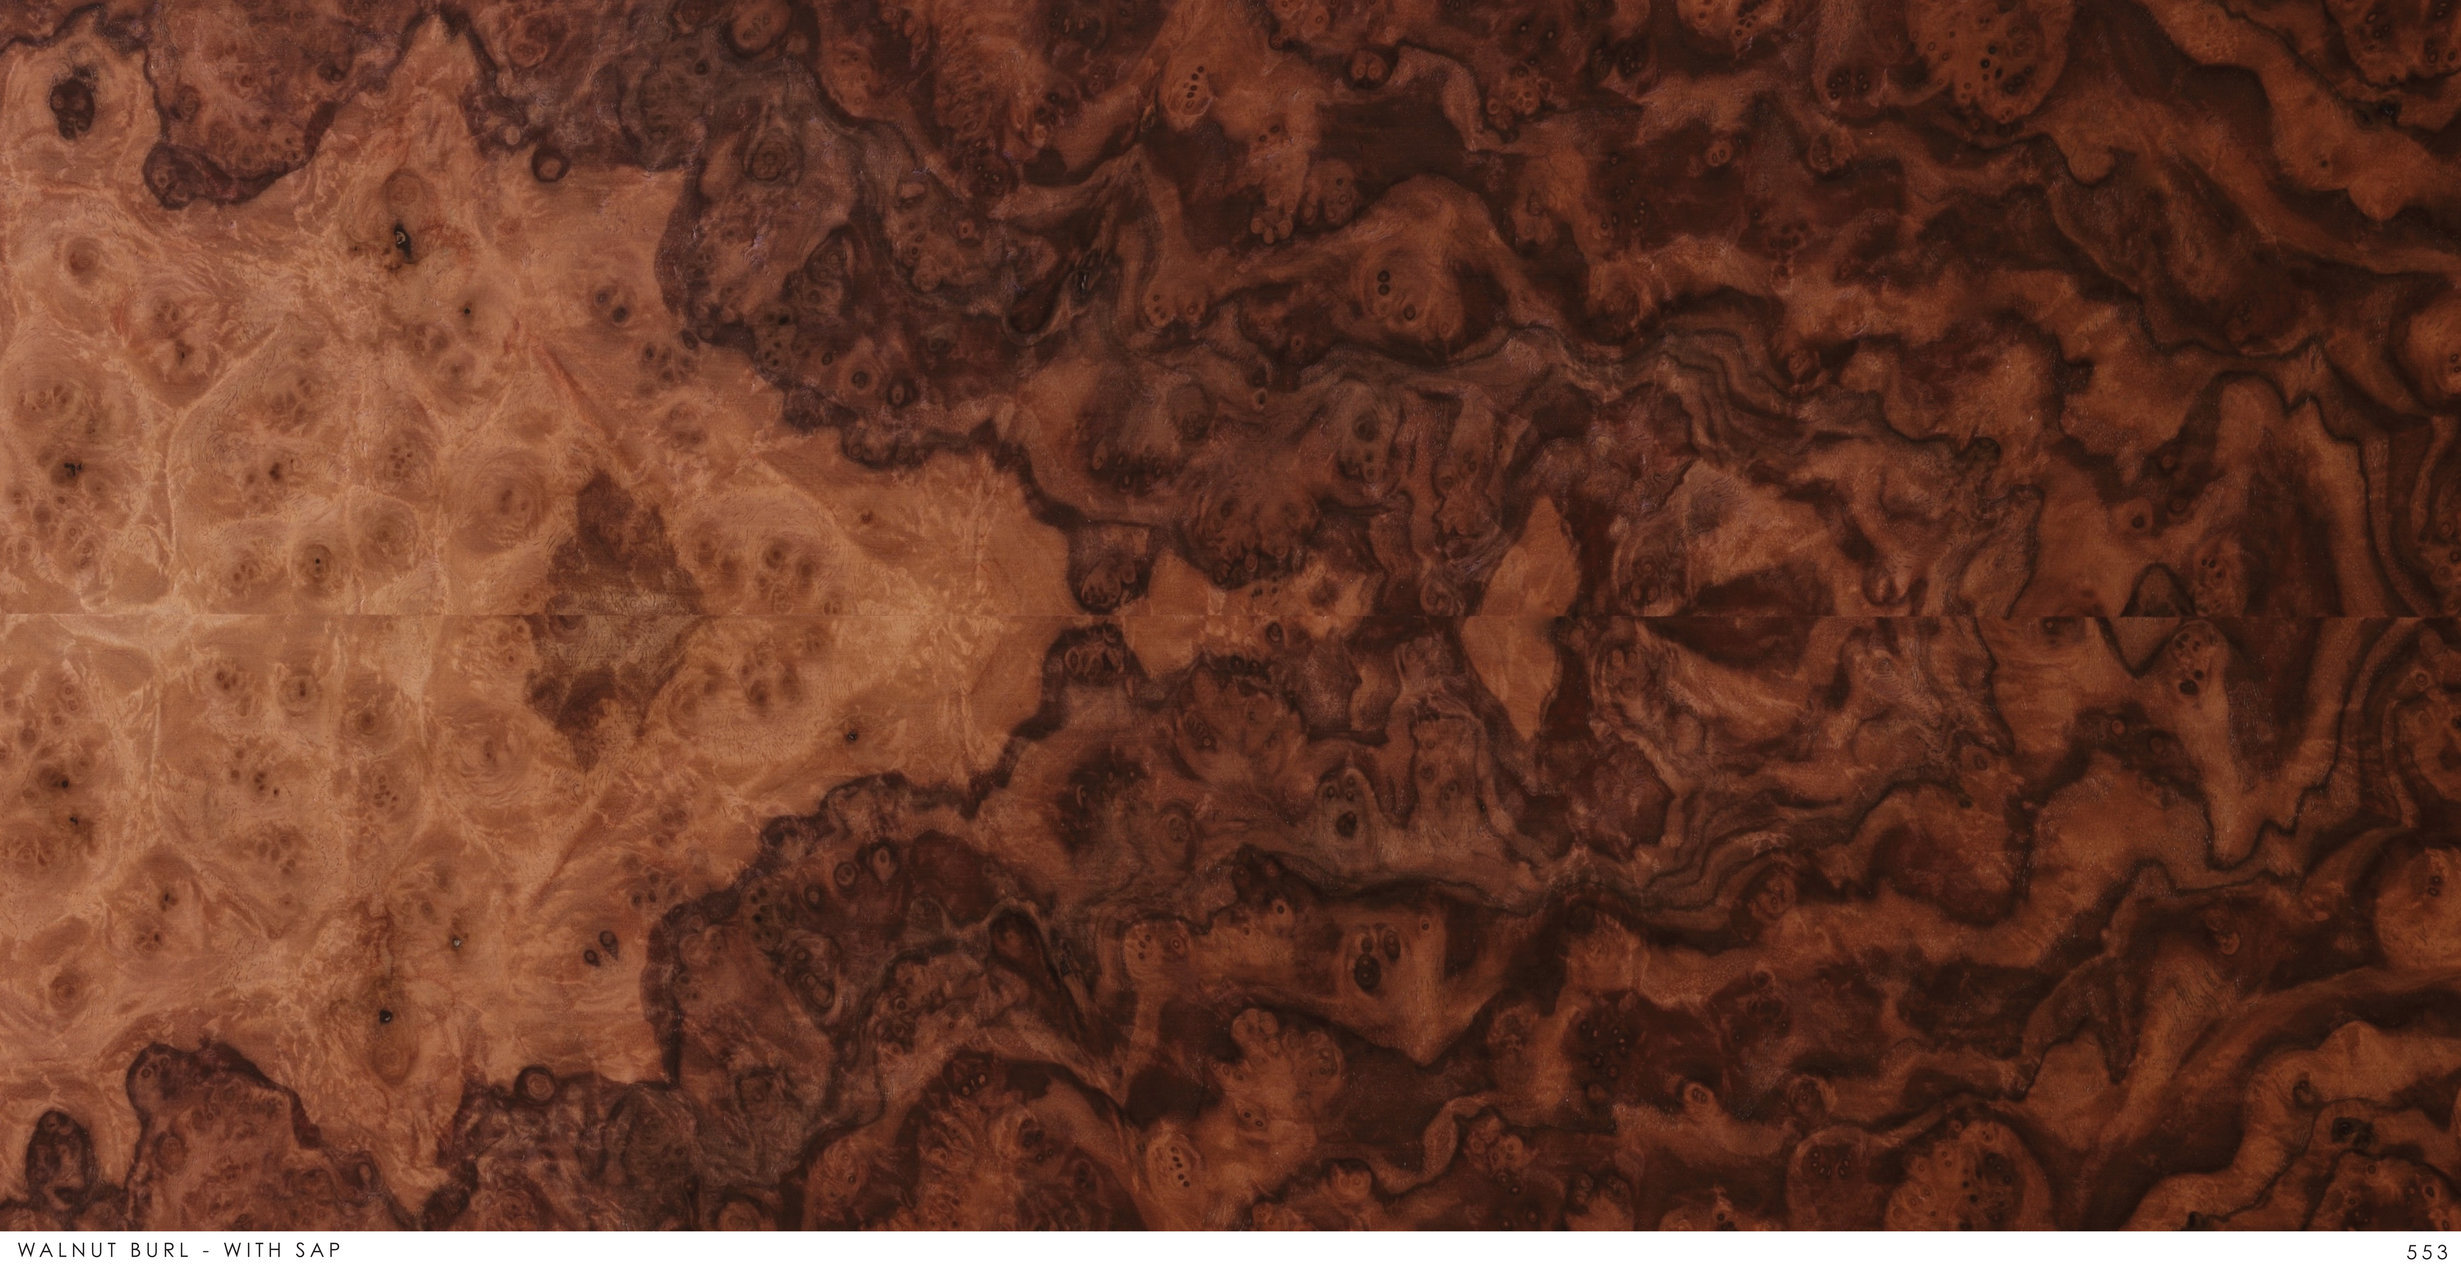 WALNUT BURL - WITH SAP 553.jpg